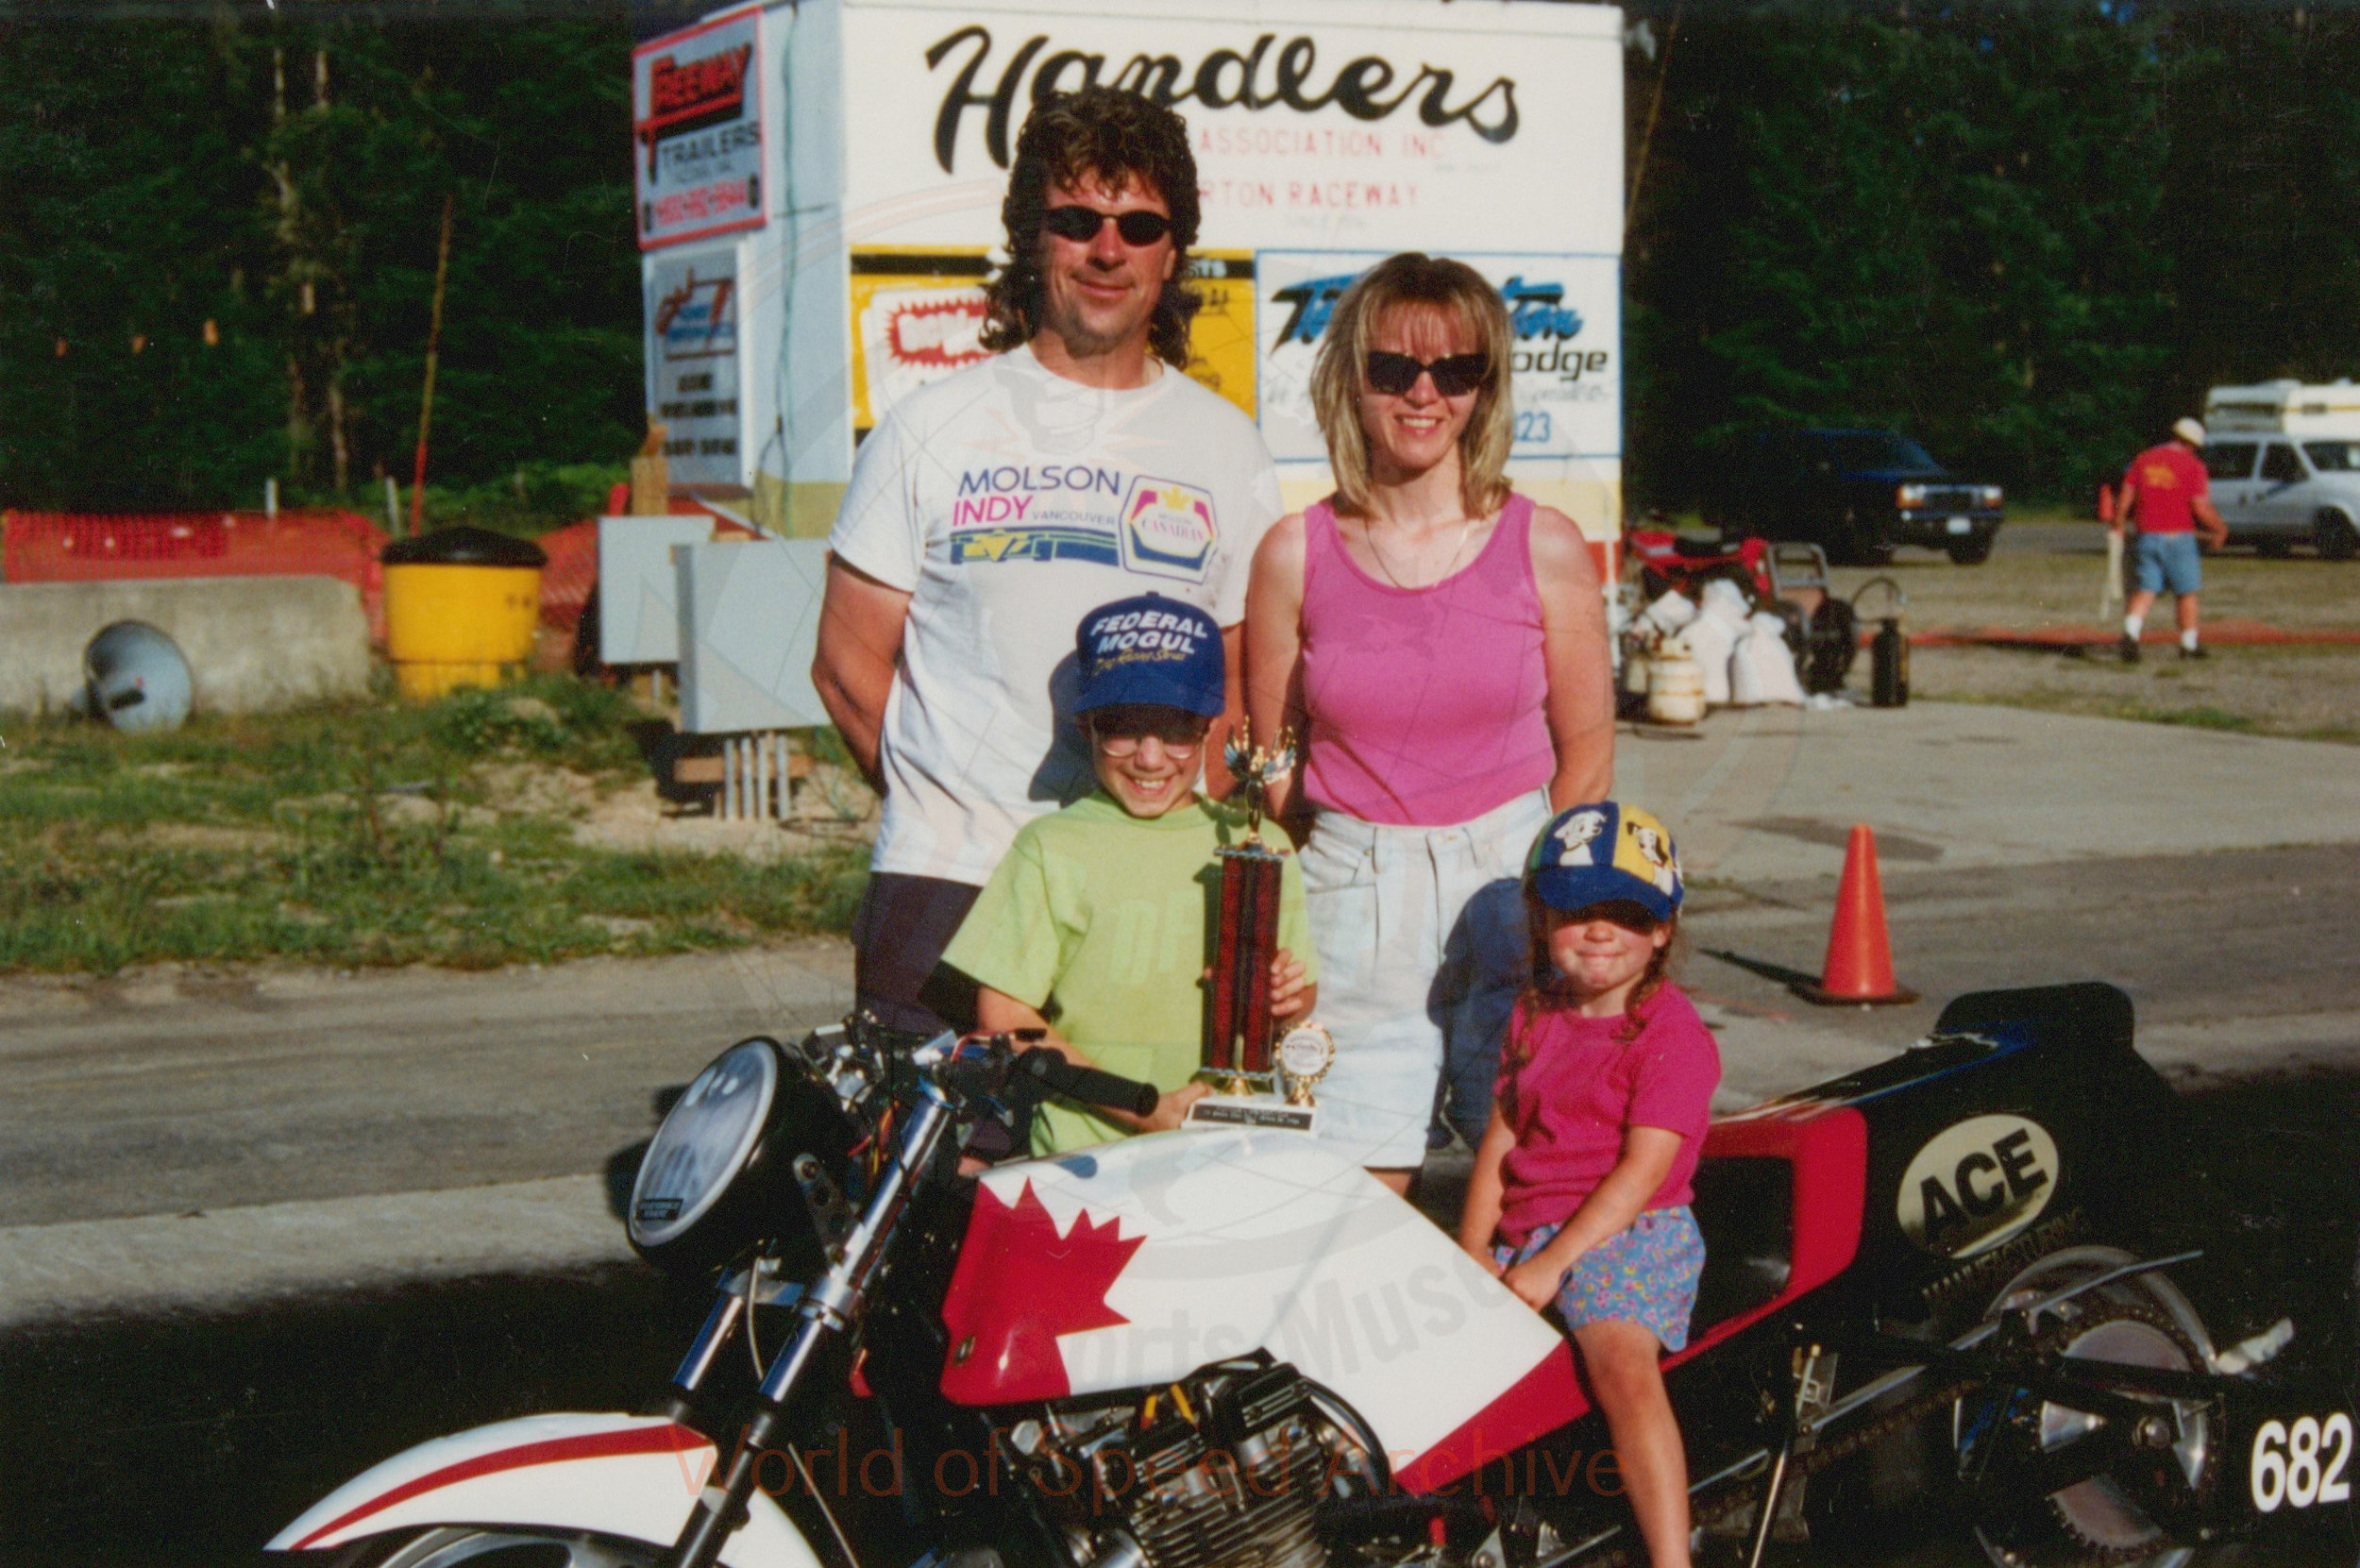 B7-S5-G3-F2-001 - trophy drag bike rider with family